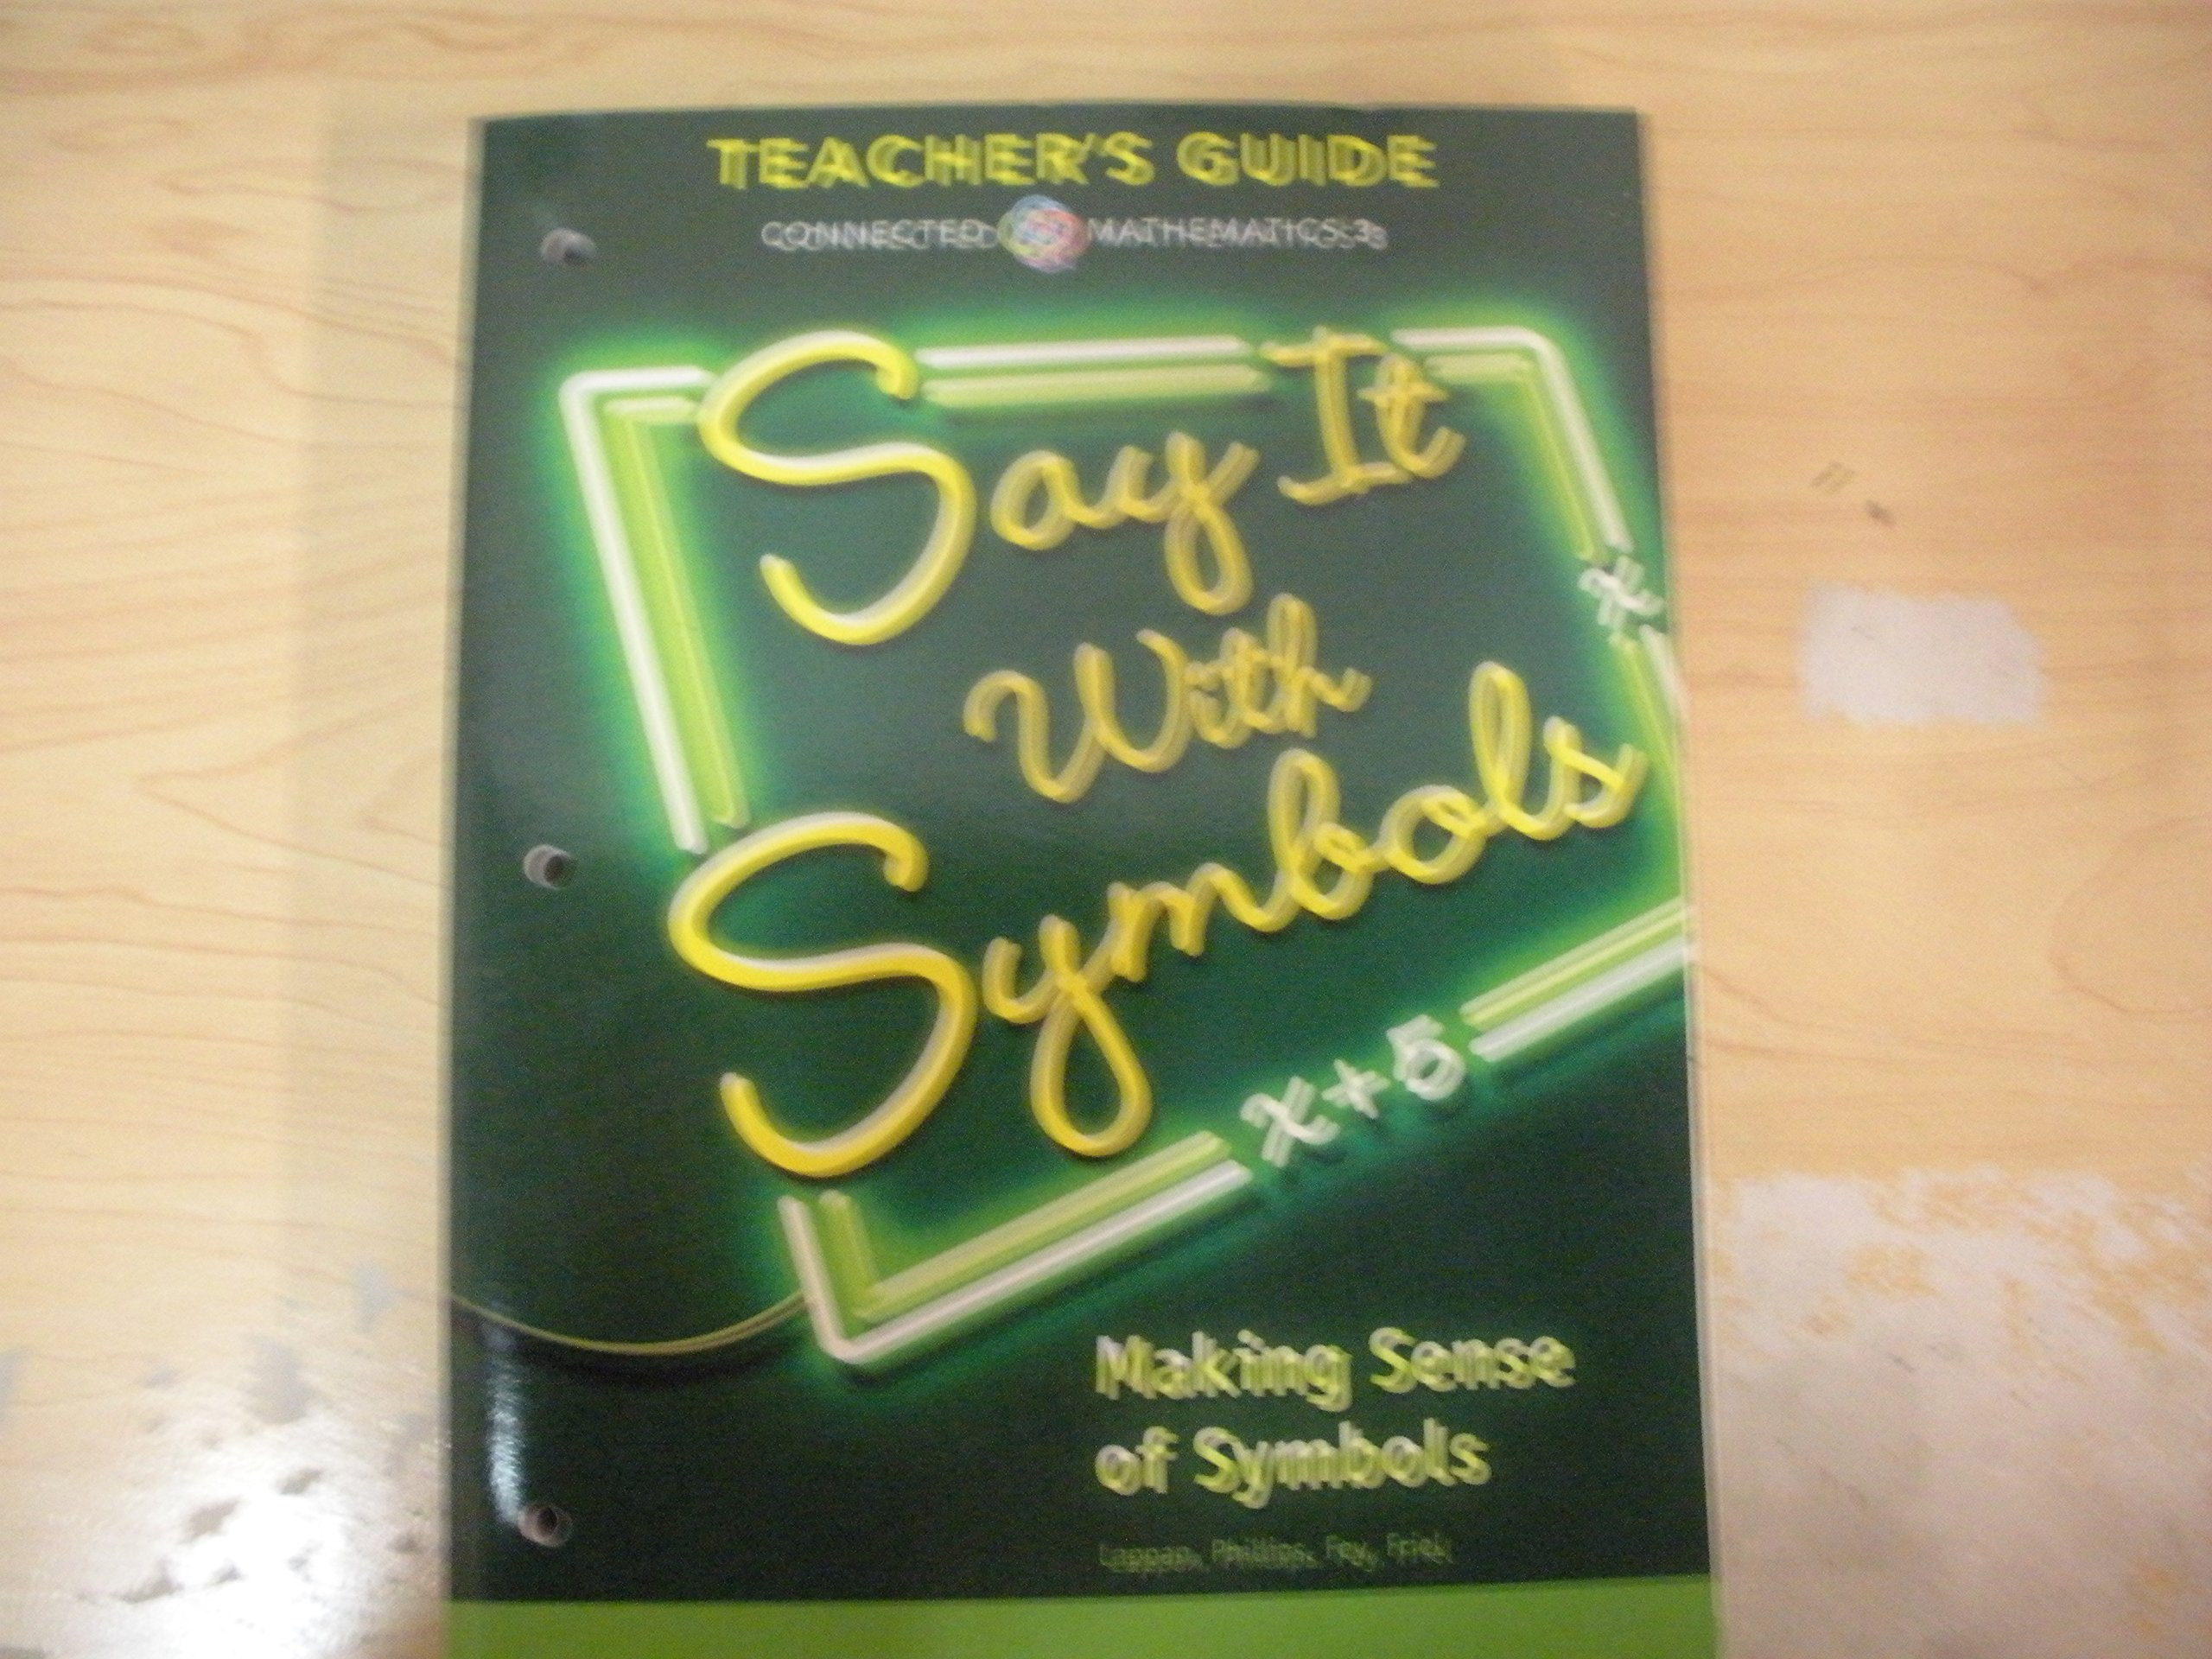 Connected Mathematics 3 TEACHER'S GUIDE Grade 8: Say It With Symbols:  Making Sense of Symbols Copyright 2014 by PEARSON (2014-05-03): PEARSON: ...